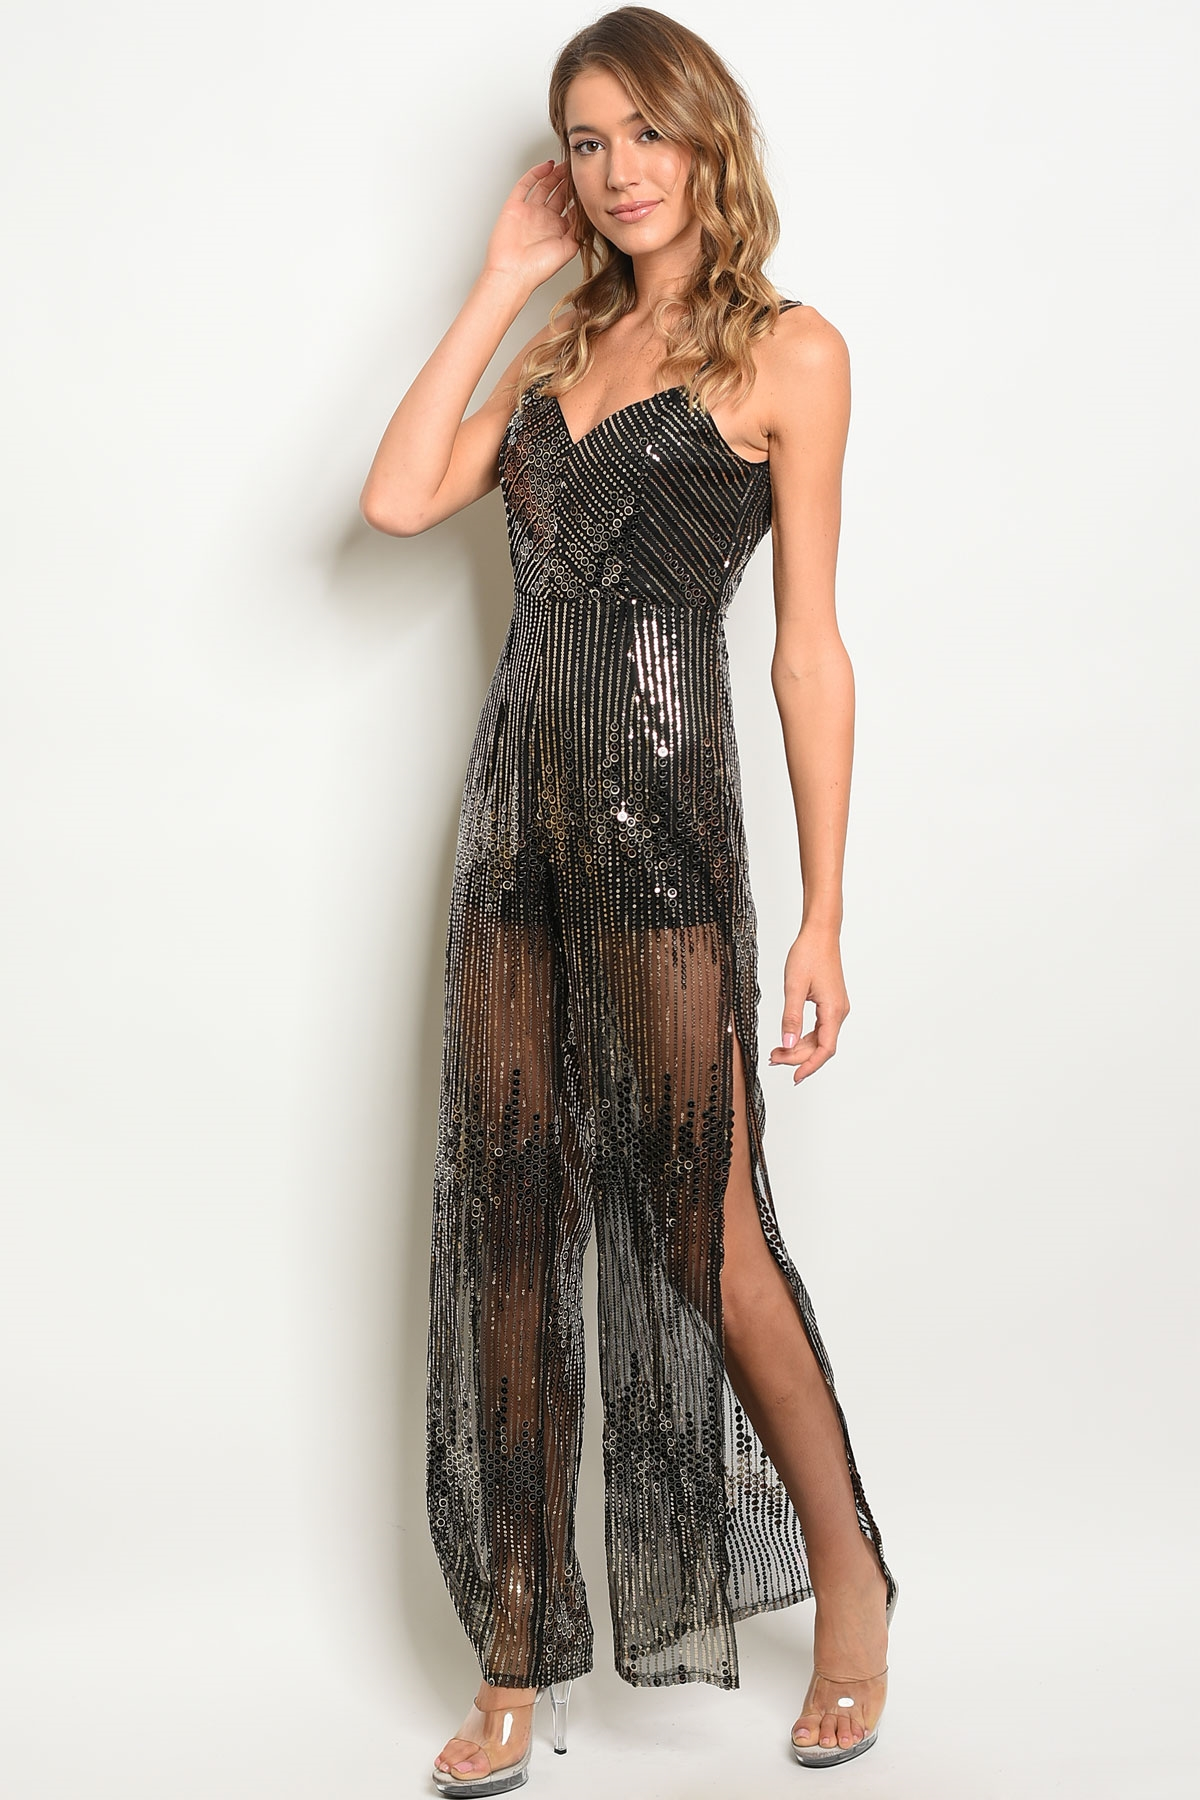 S22 5 4 Na J4239 Black Gold With Sequins Jumpsuit 3 2 1